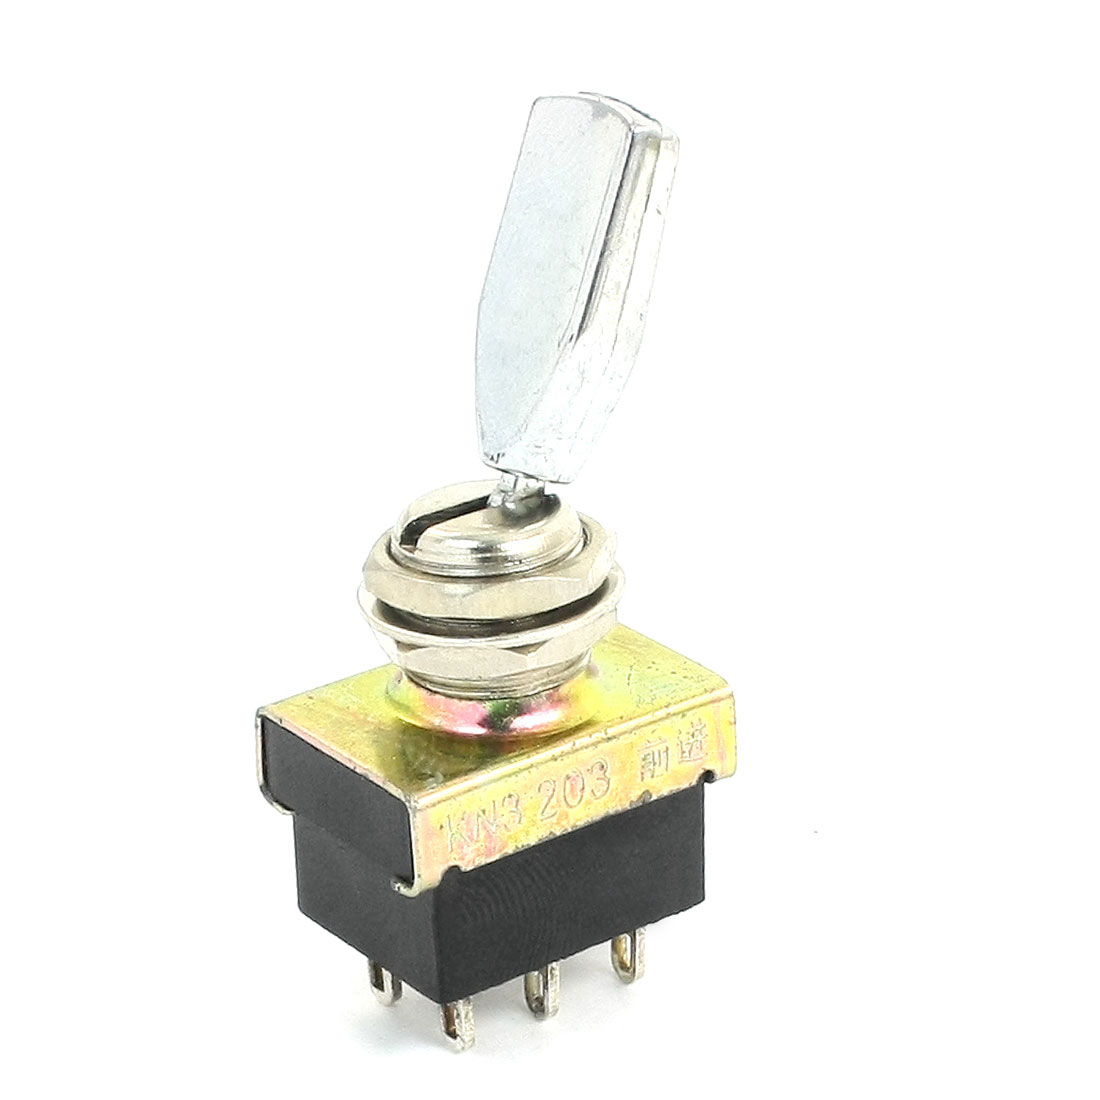 AC 220V 3A ON/OFF/ON 3 Positions 9 Pin Latching Toggle Switch DPDT KN3-203